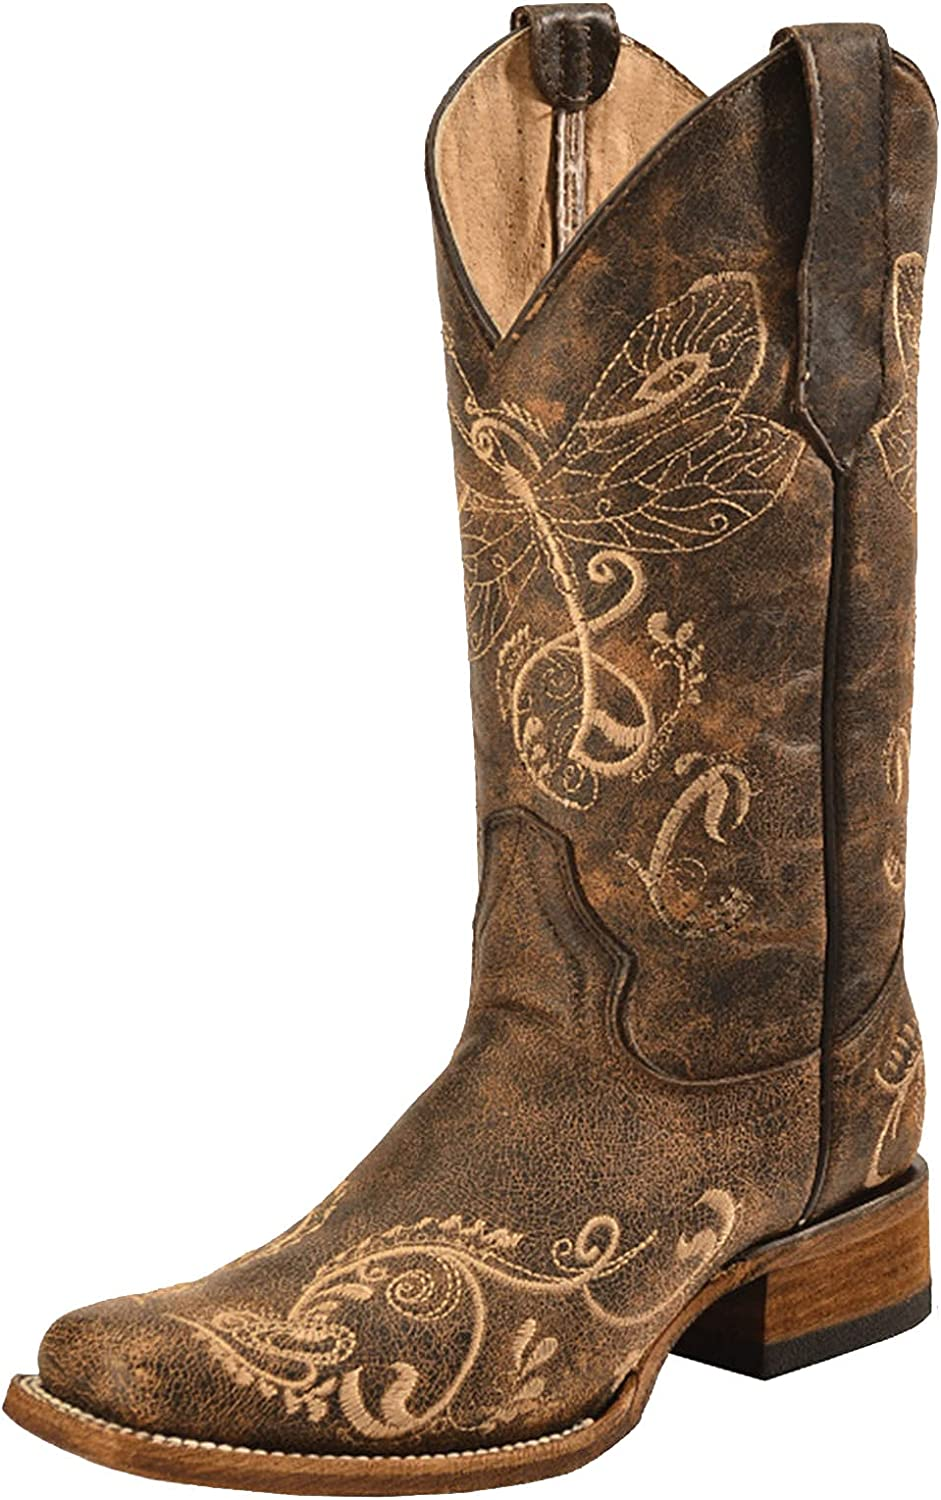 Erocalli Western Boots Women Cowgirl Cowboy Riding Horse Boots Chunky Heel Mid Claf Boot Square Toe Embroidery Buckle English Riding Equestrian Boots